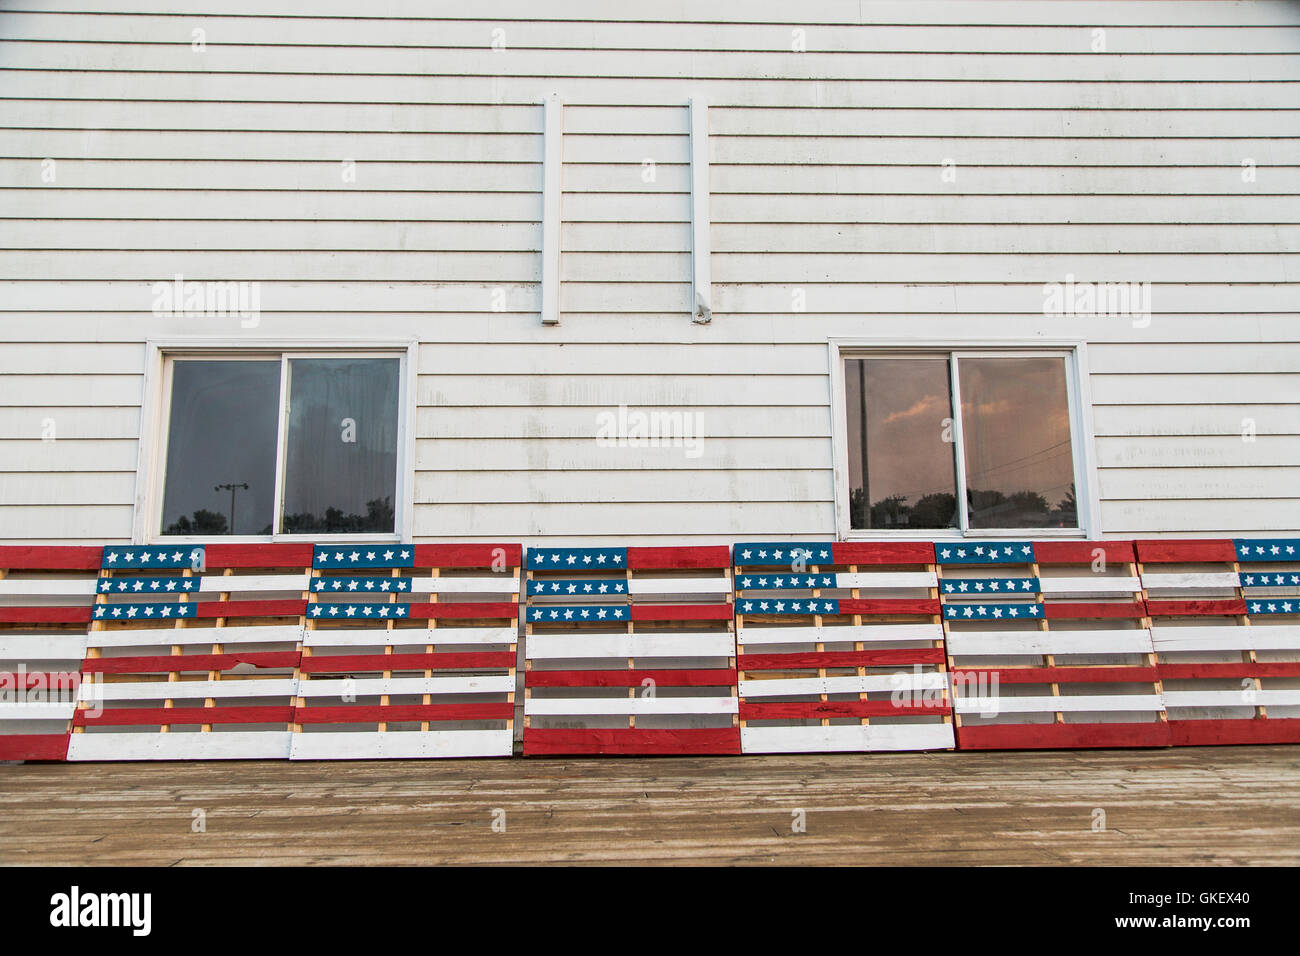 A Patriotic Display Of Wooden Pallets Painted In American Flag Motifs Red White And Blue